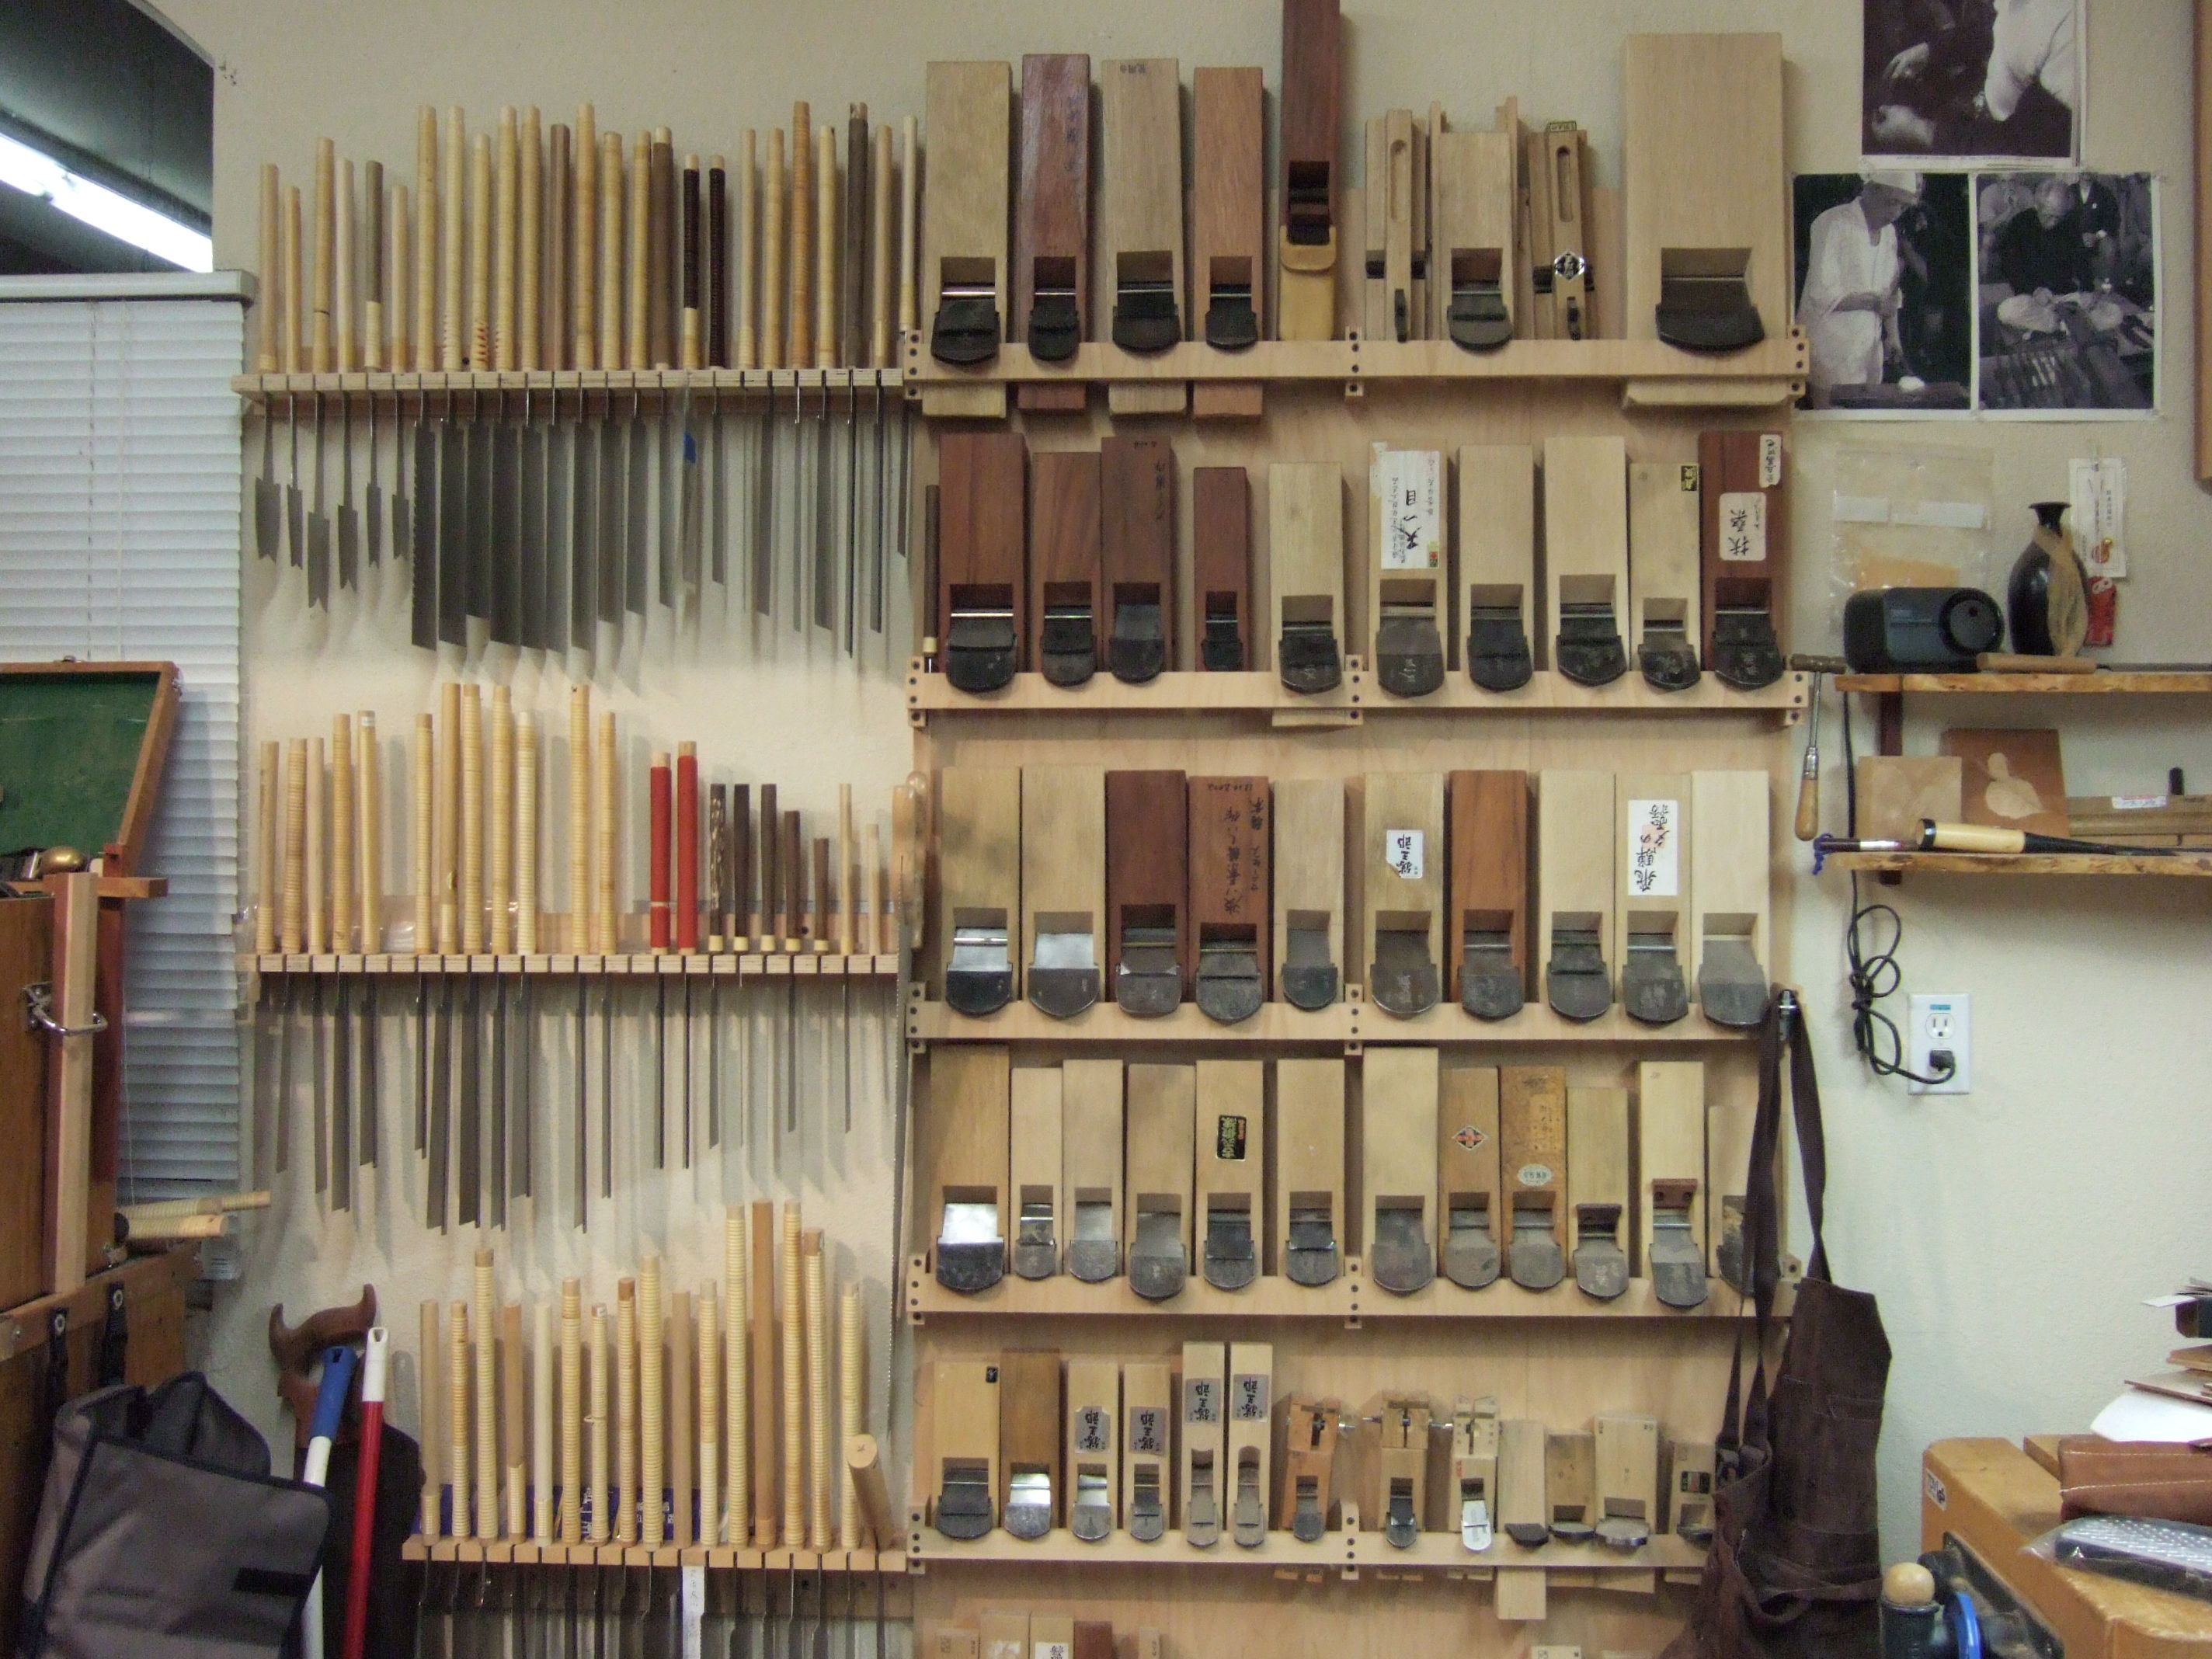 Manny S Workshop Tools Woodworking Japanese Tools Wood